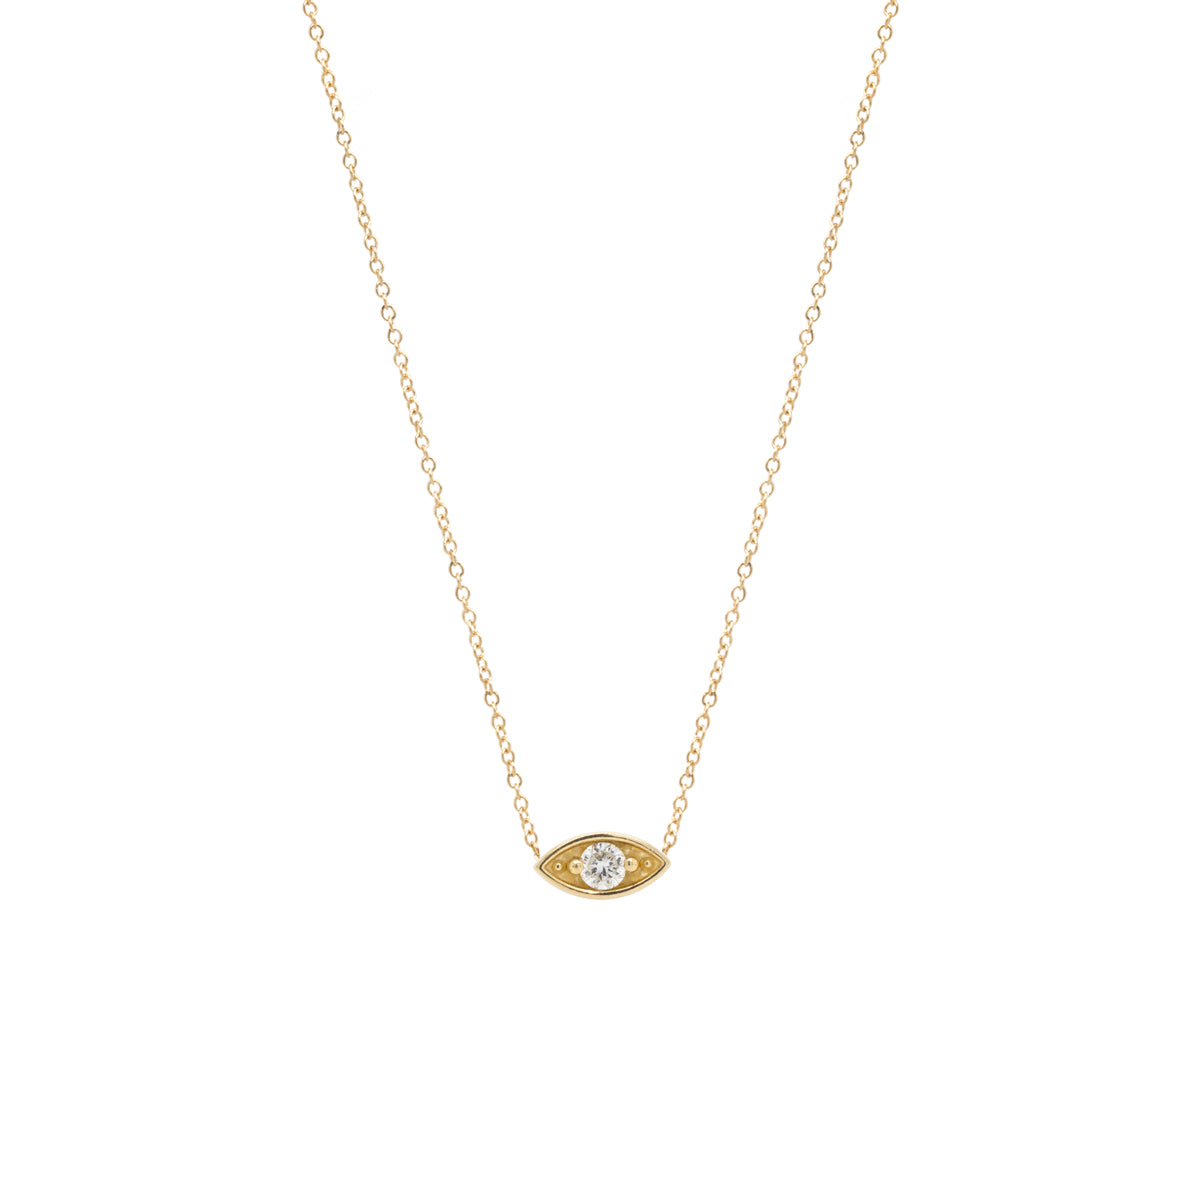 14k large eye necklace